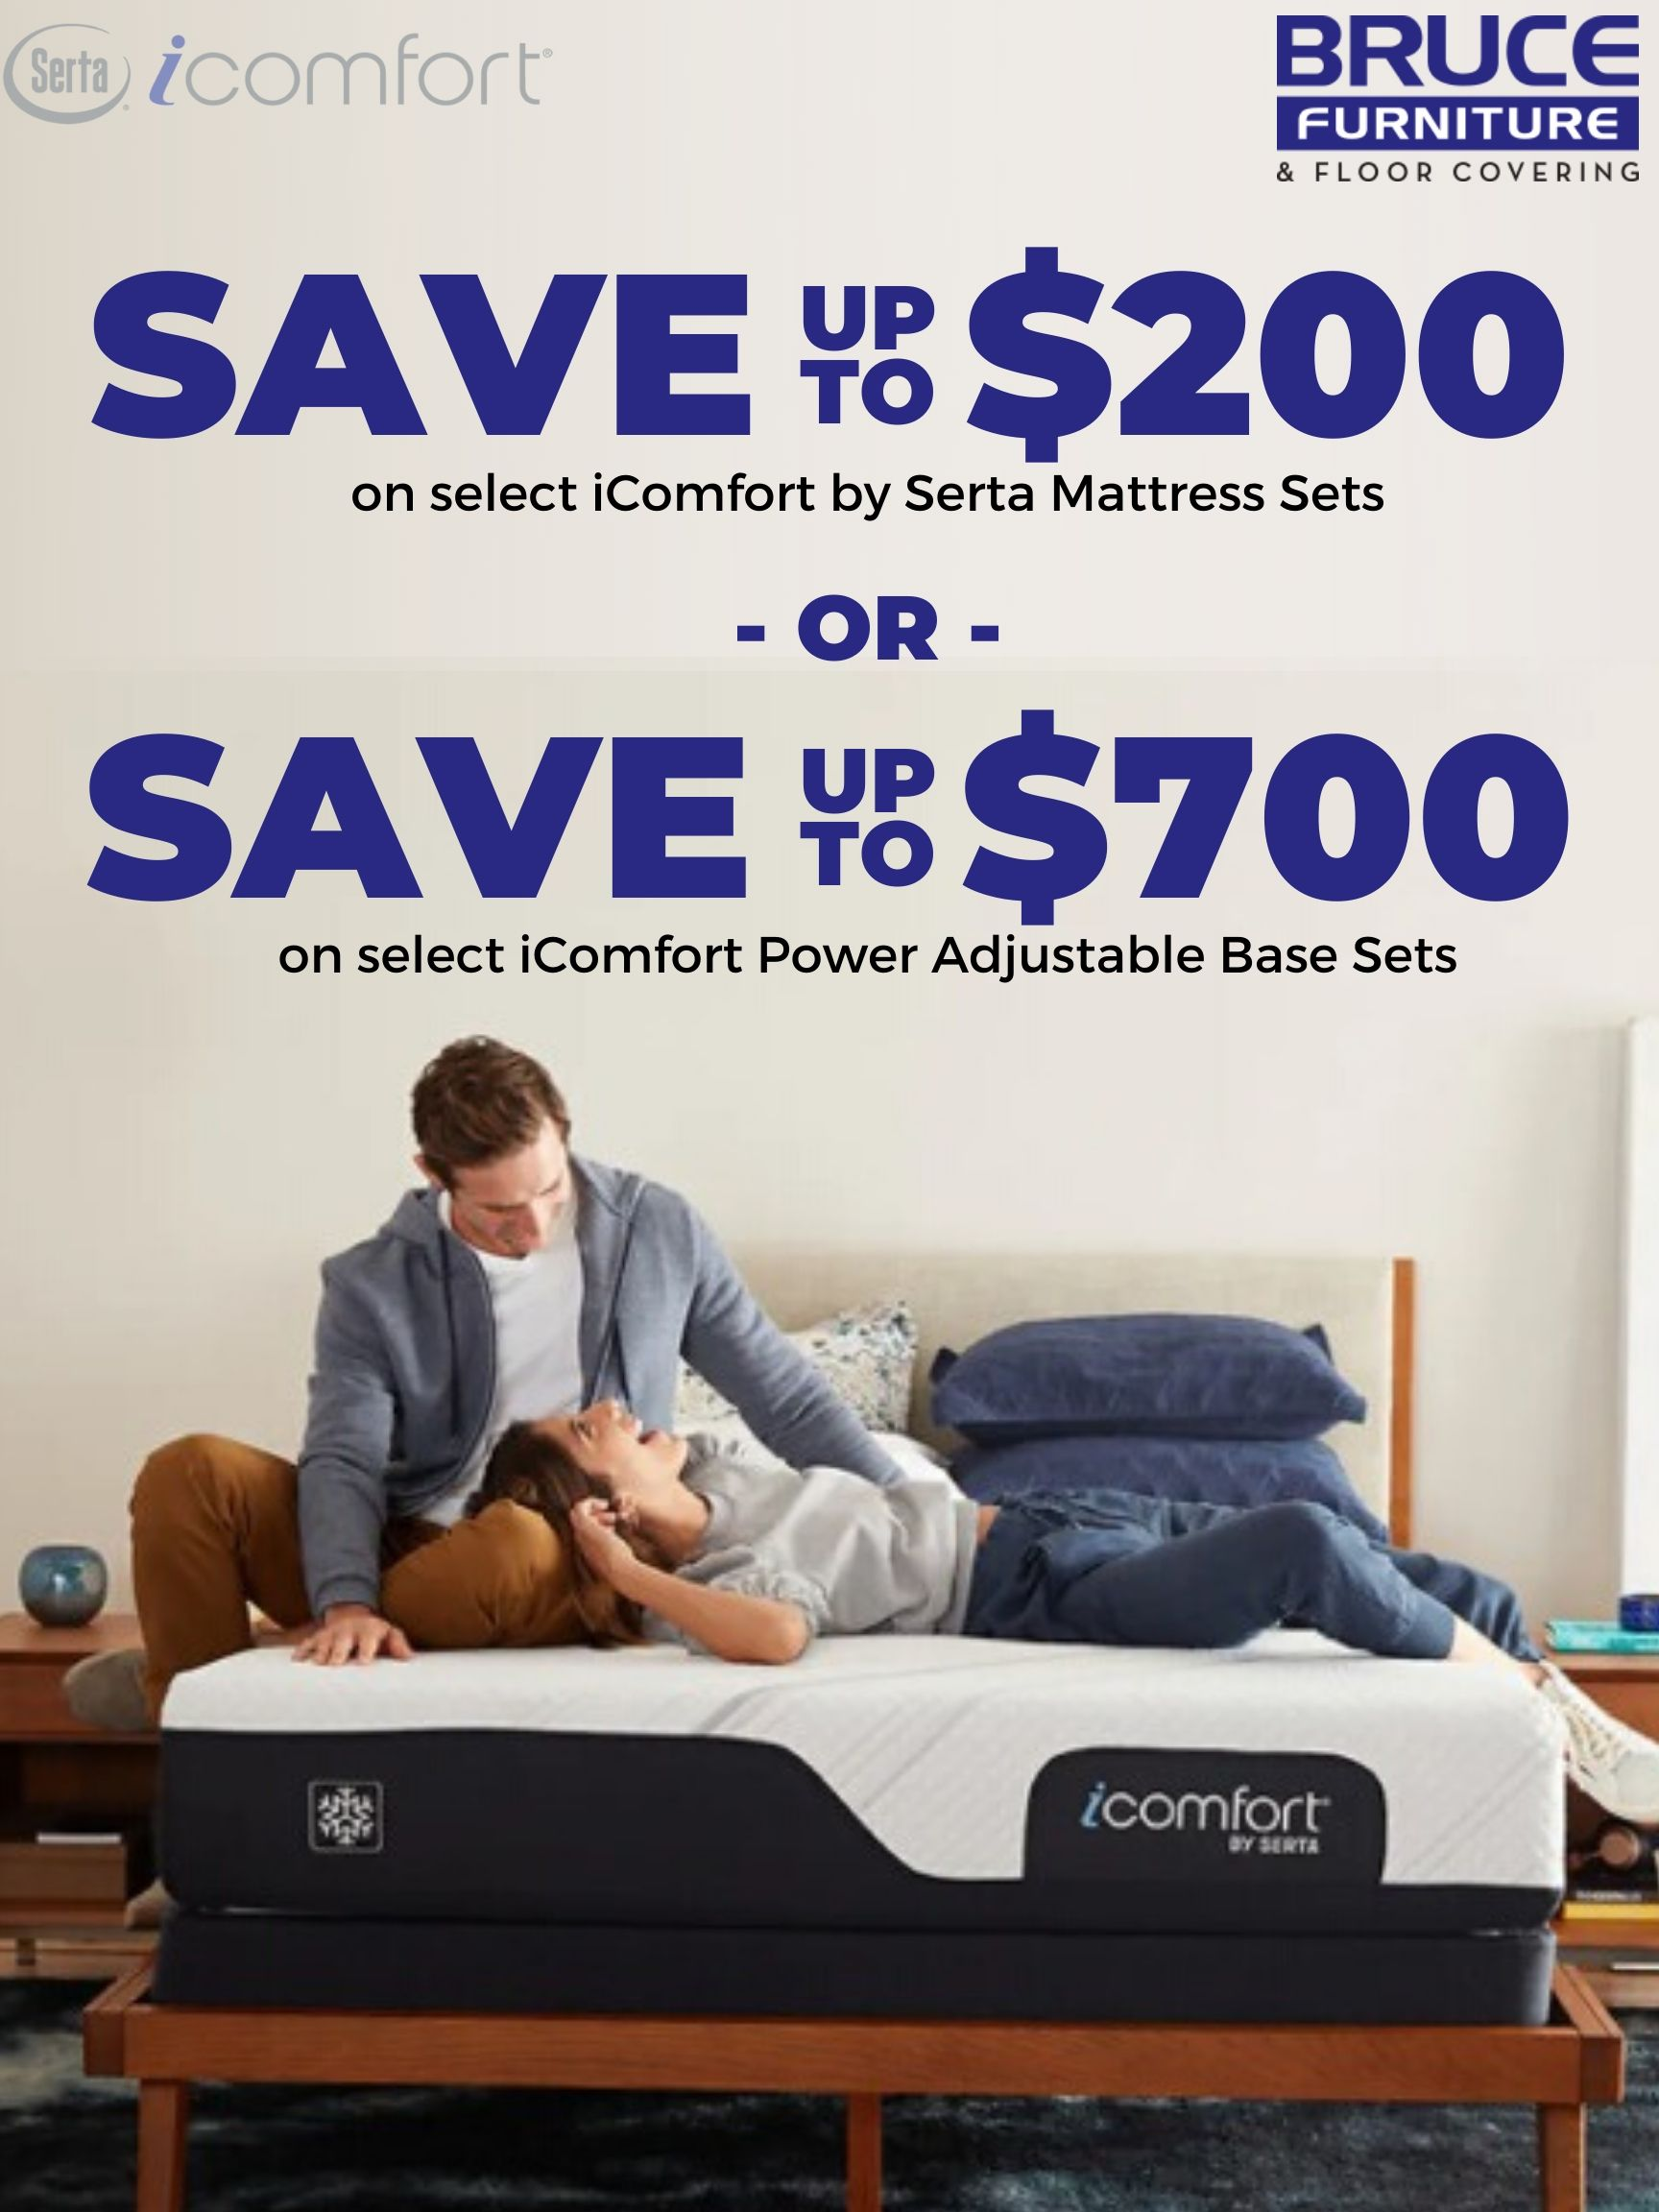 Hurry Into Bruce Furniture For Our Big Presidents Day Sale Save Up To 200 On Select Icomfort By Serta Mattress S In 2020 Furniture Shop Mattress Sets Serta Mattress